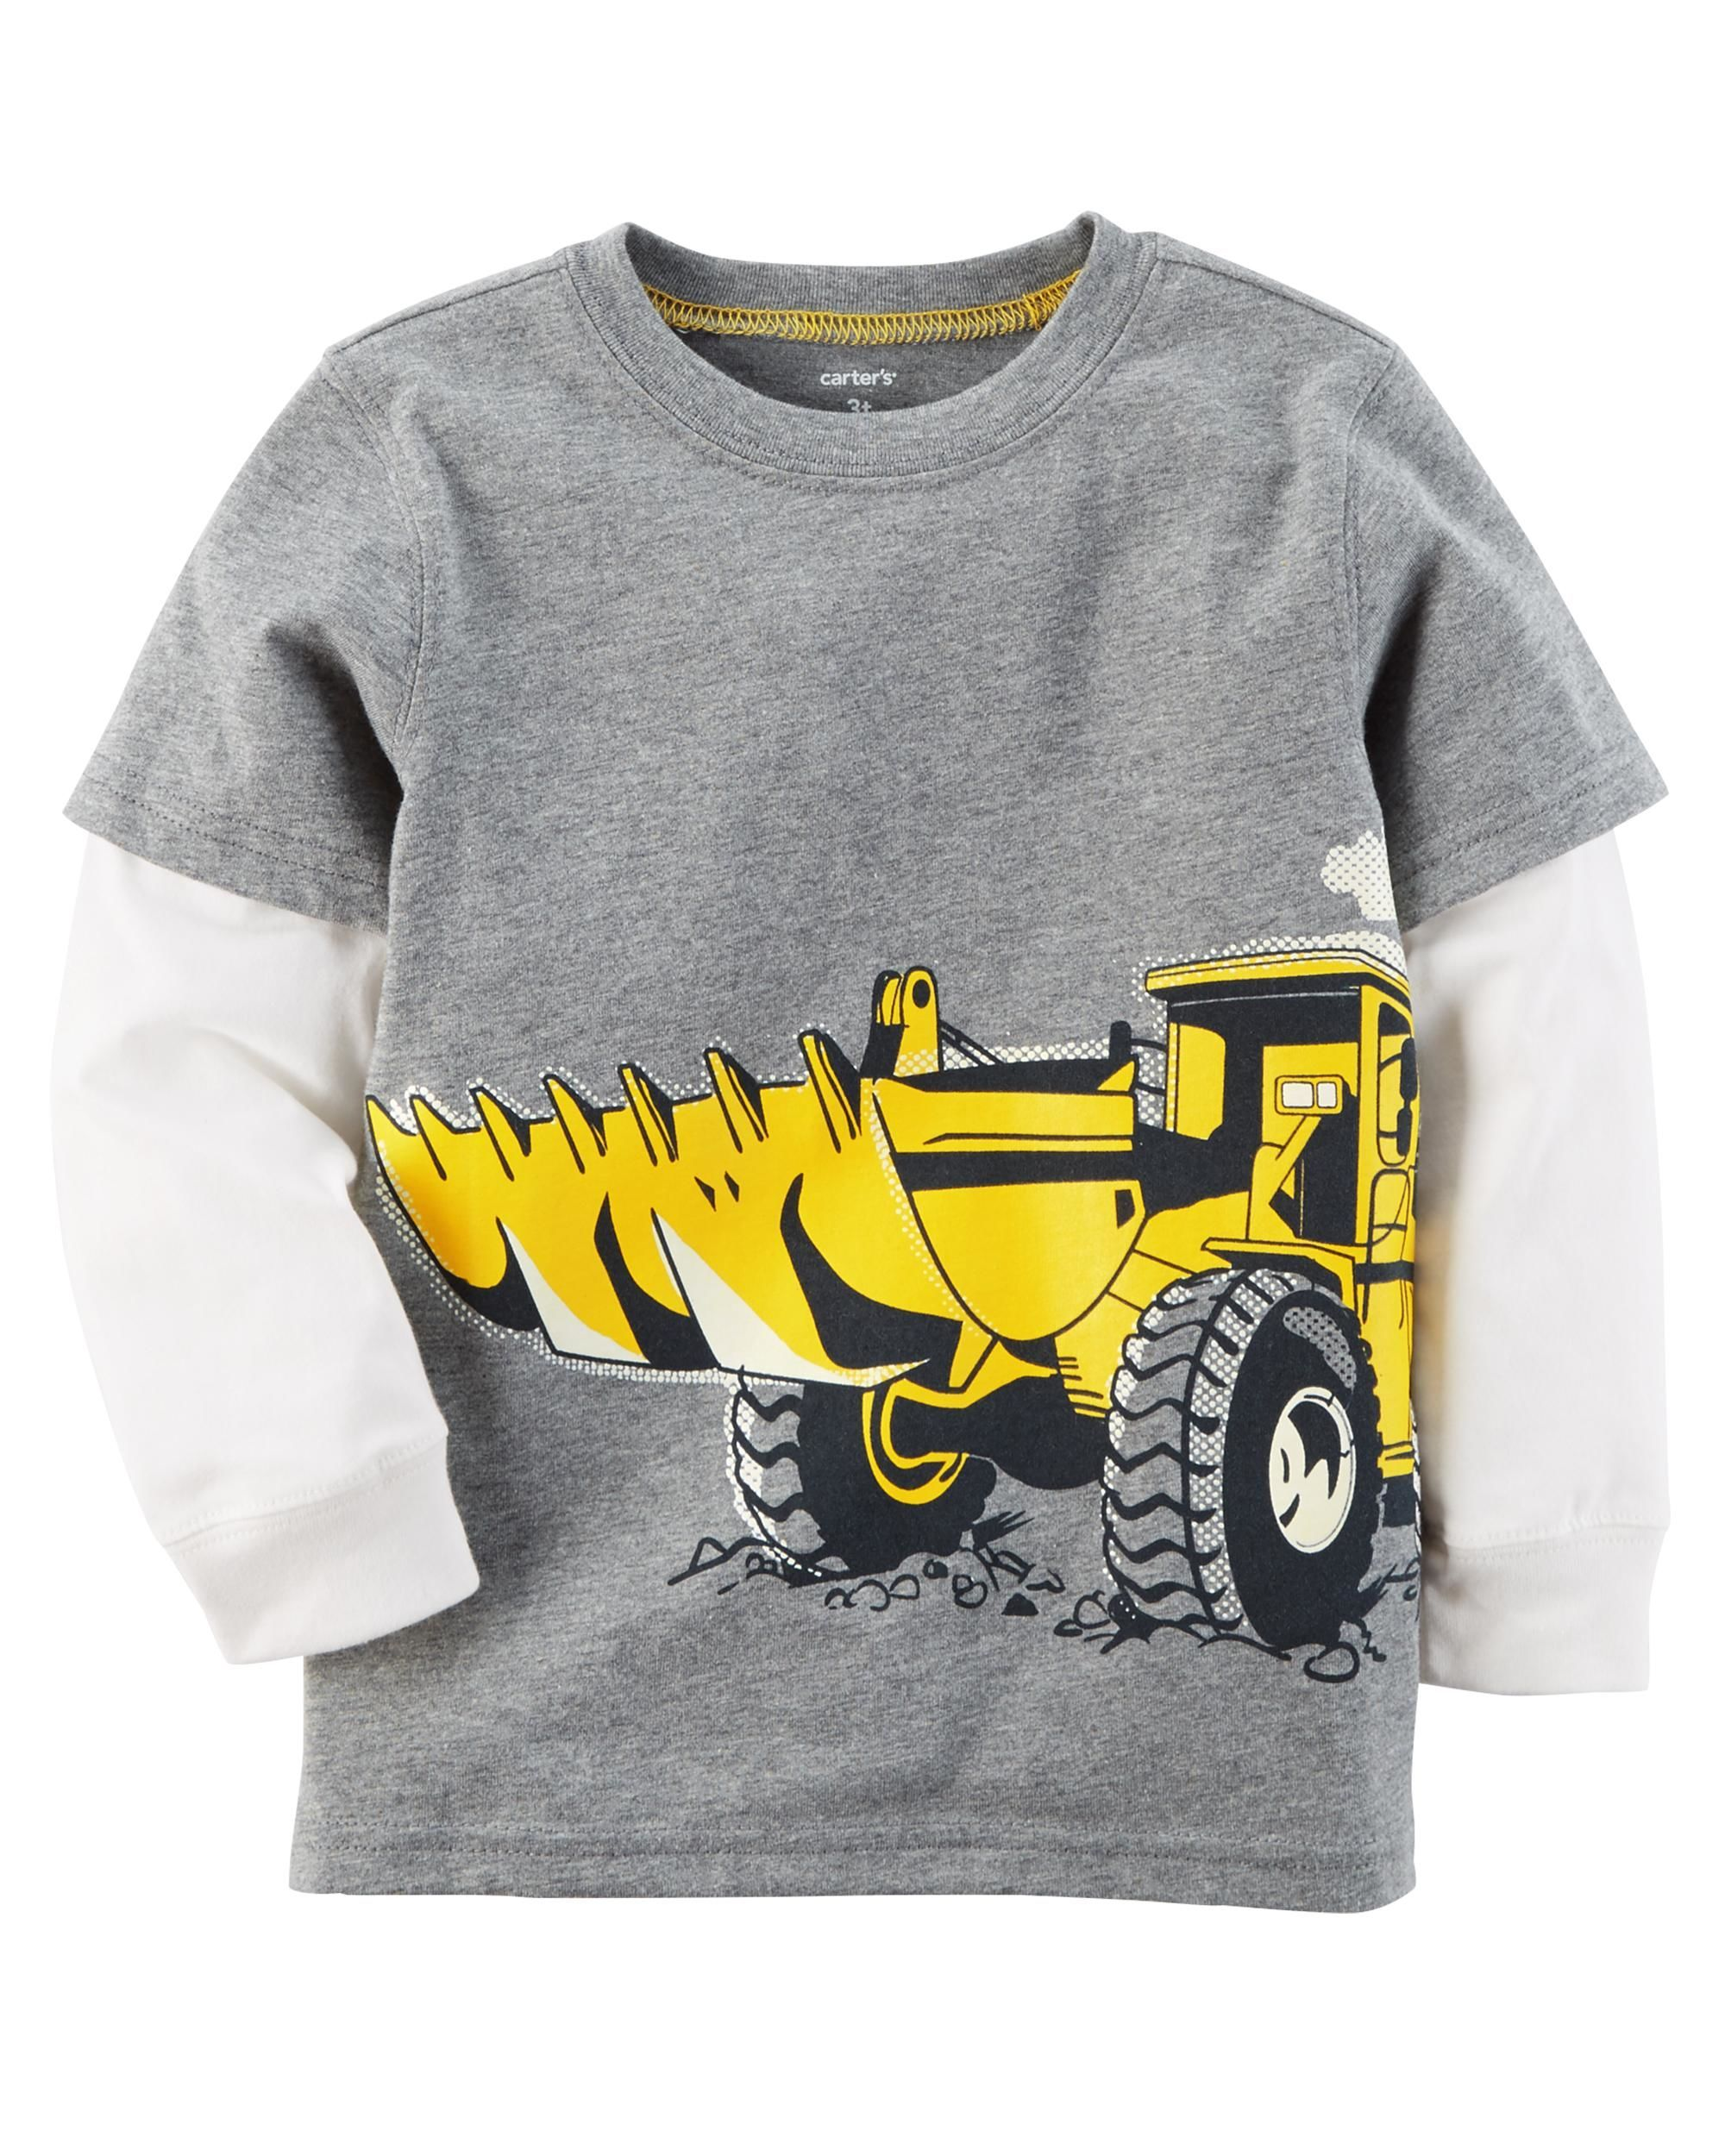 Layered Look Construction Tee With Images Baby Boy